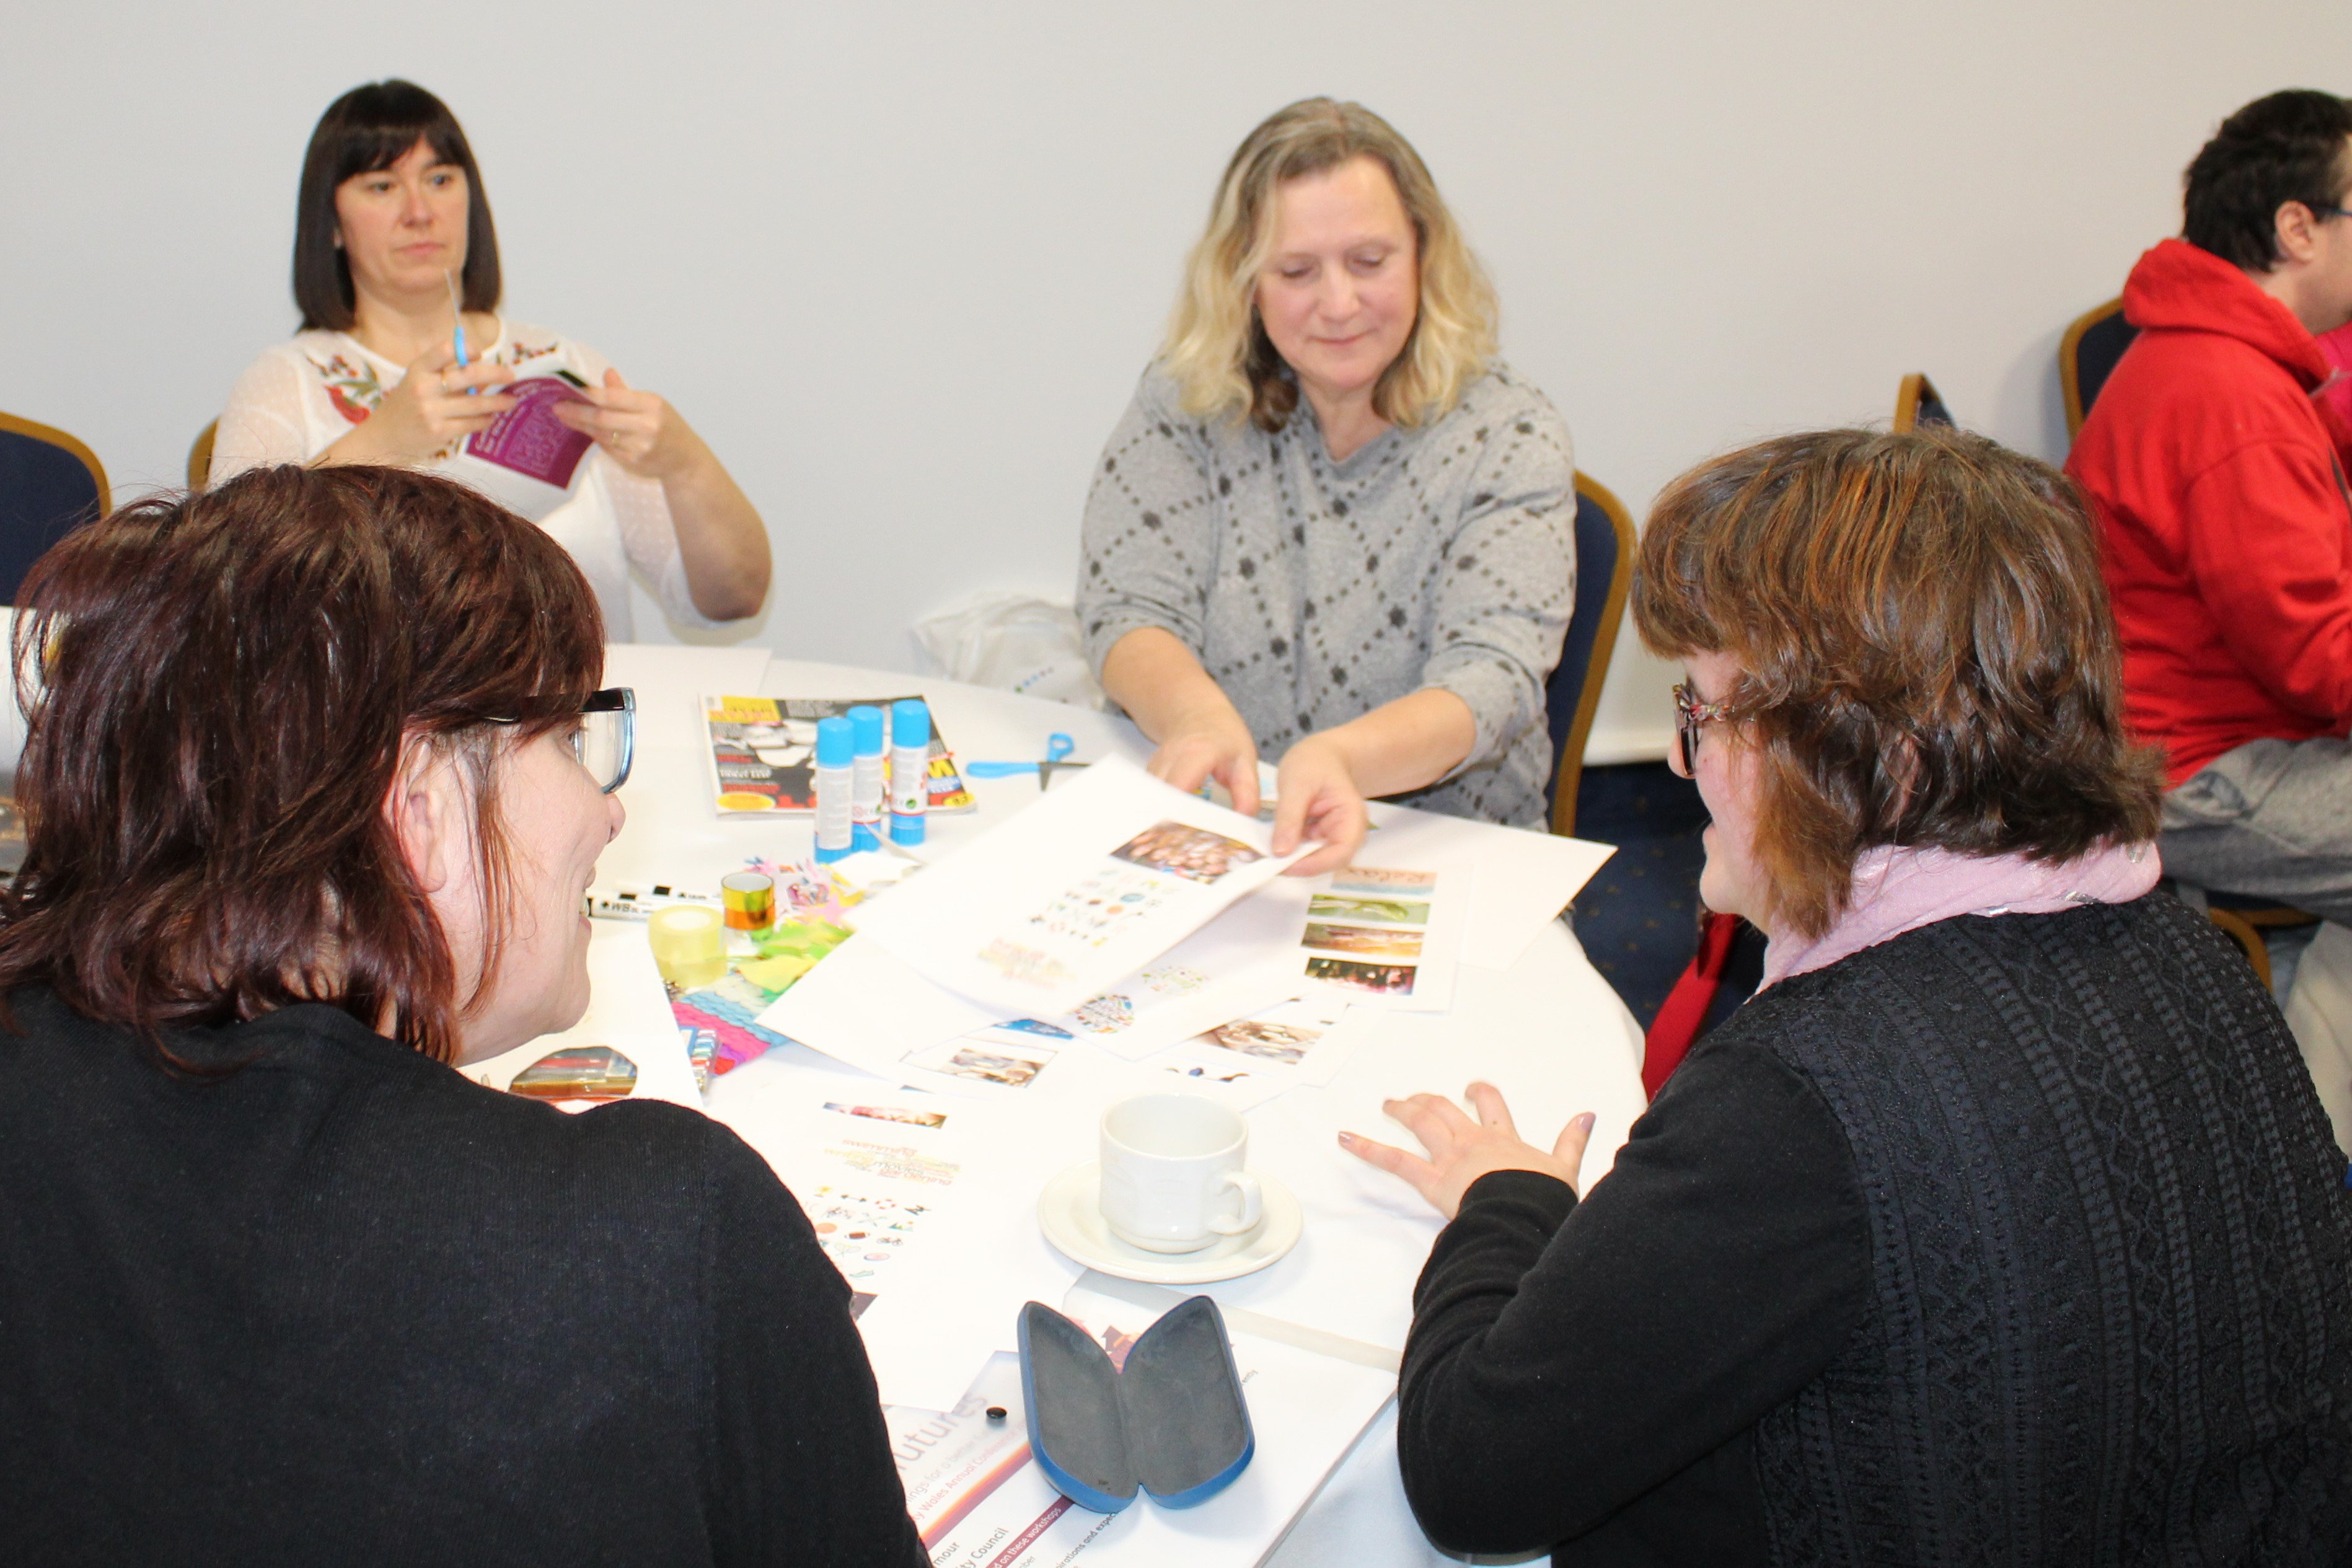 group of people at a workshop